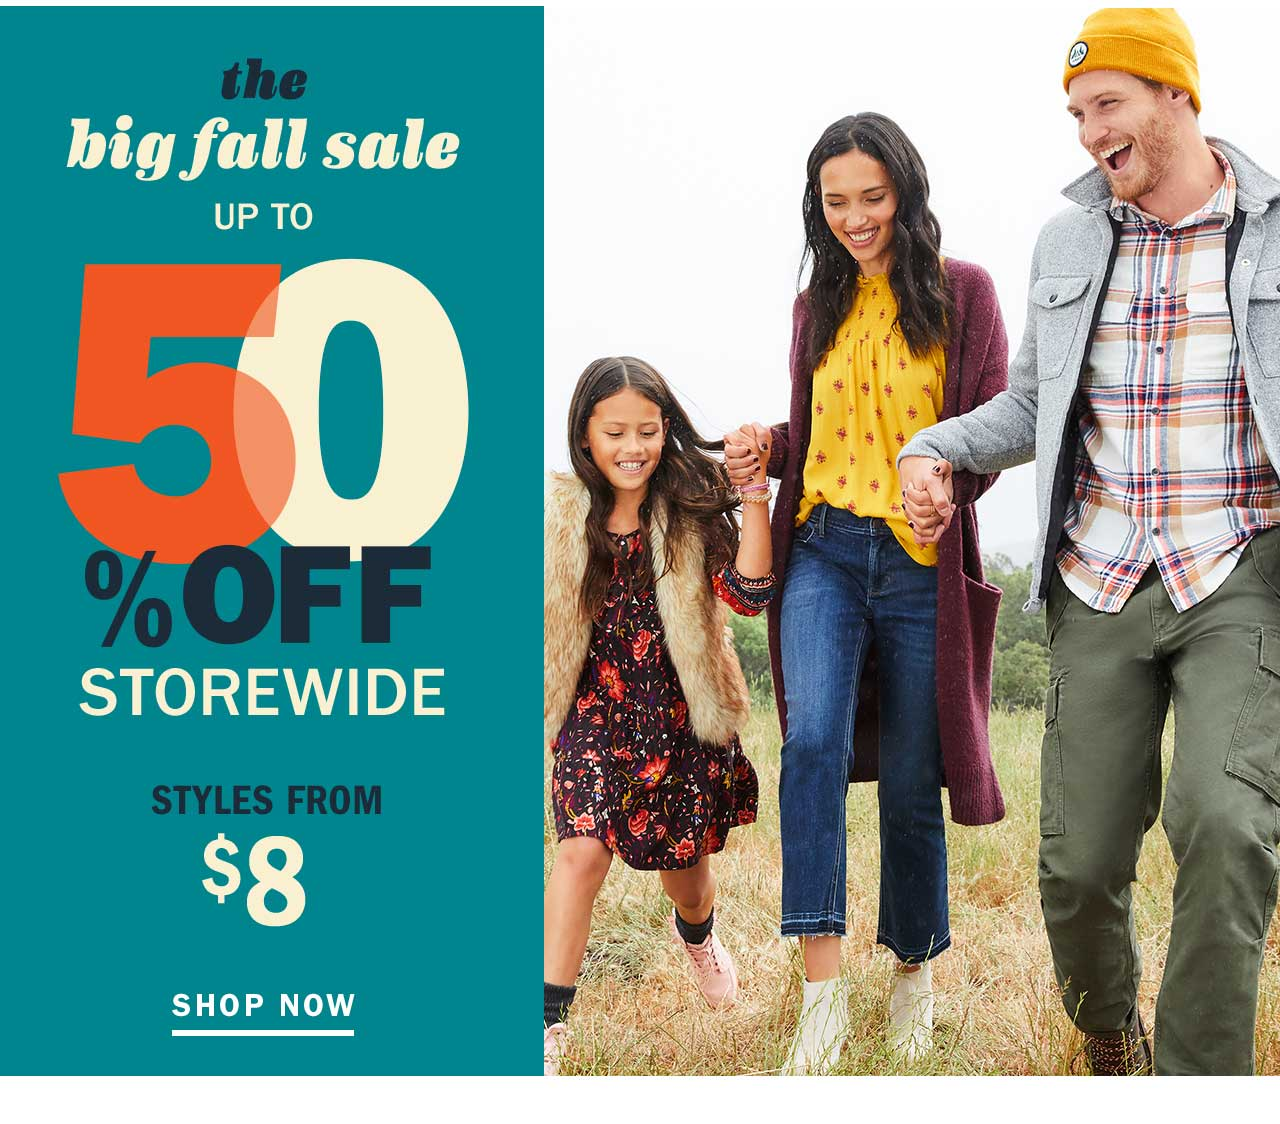 UP TO 50% OFF STOREWIDE | STYLES FROM $8 | SHOP NOW